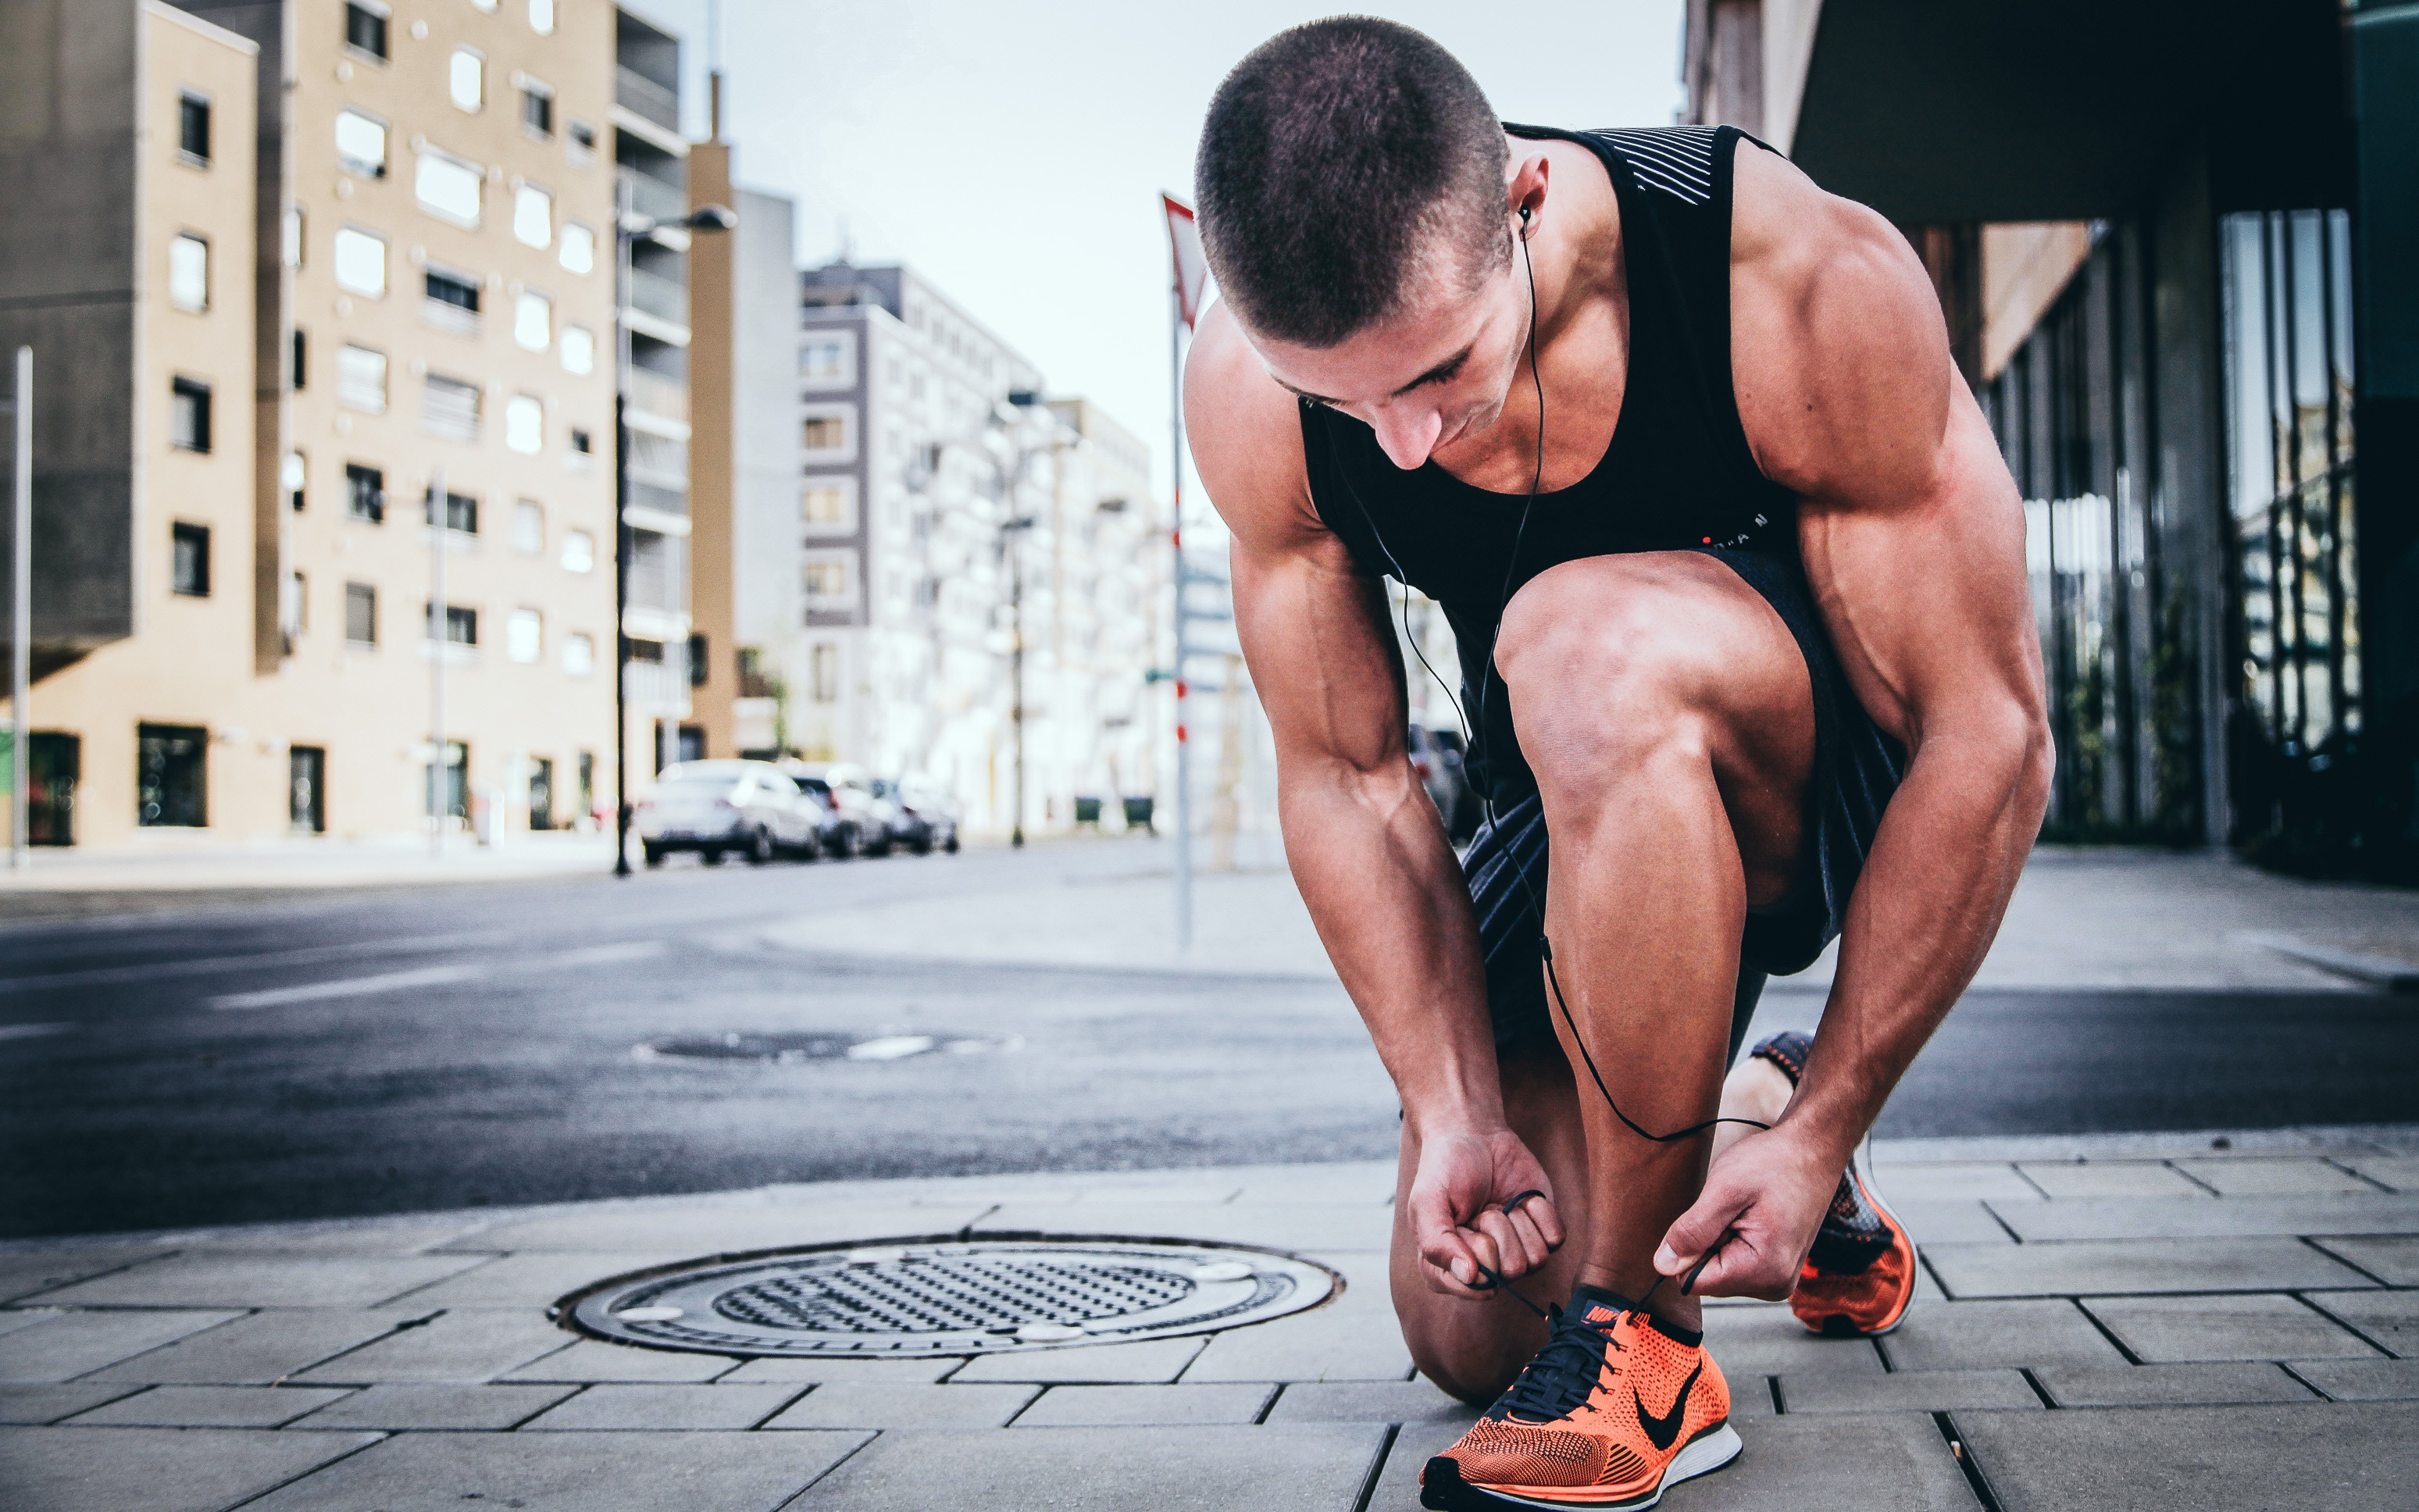 The Sports Archives Blog - The Sports Archives - Stop Making Excuses and Get Fit This Summer